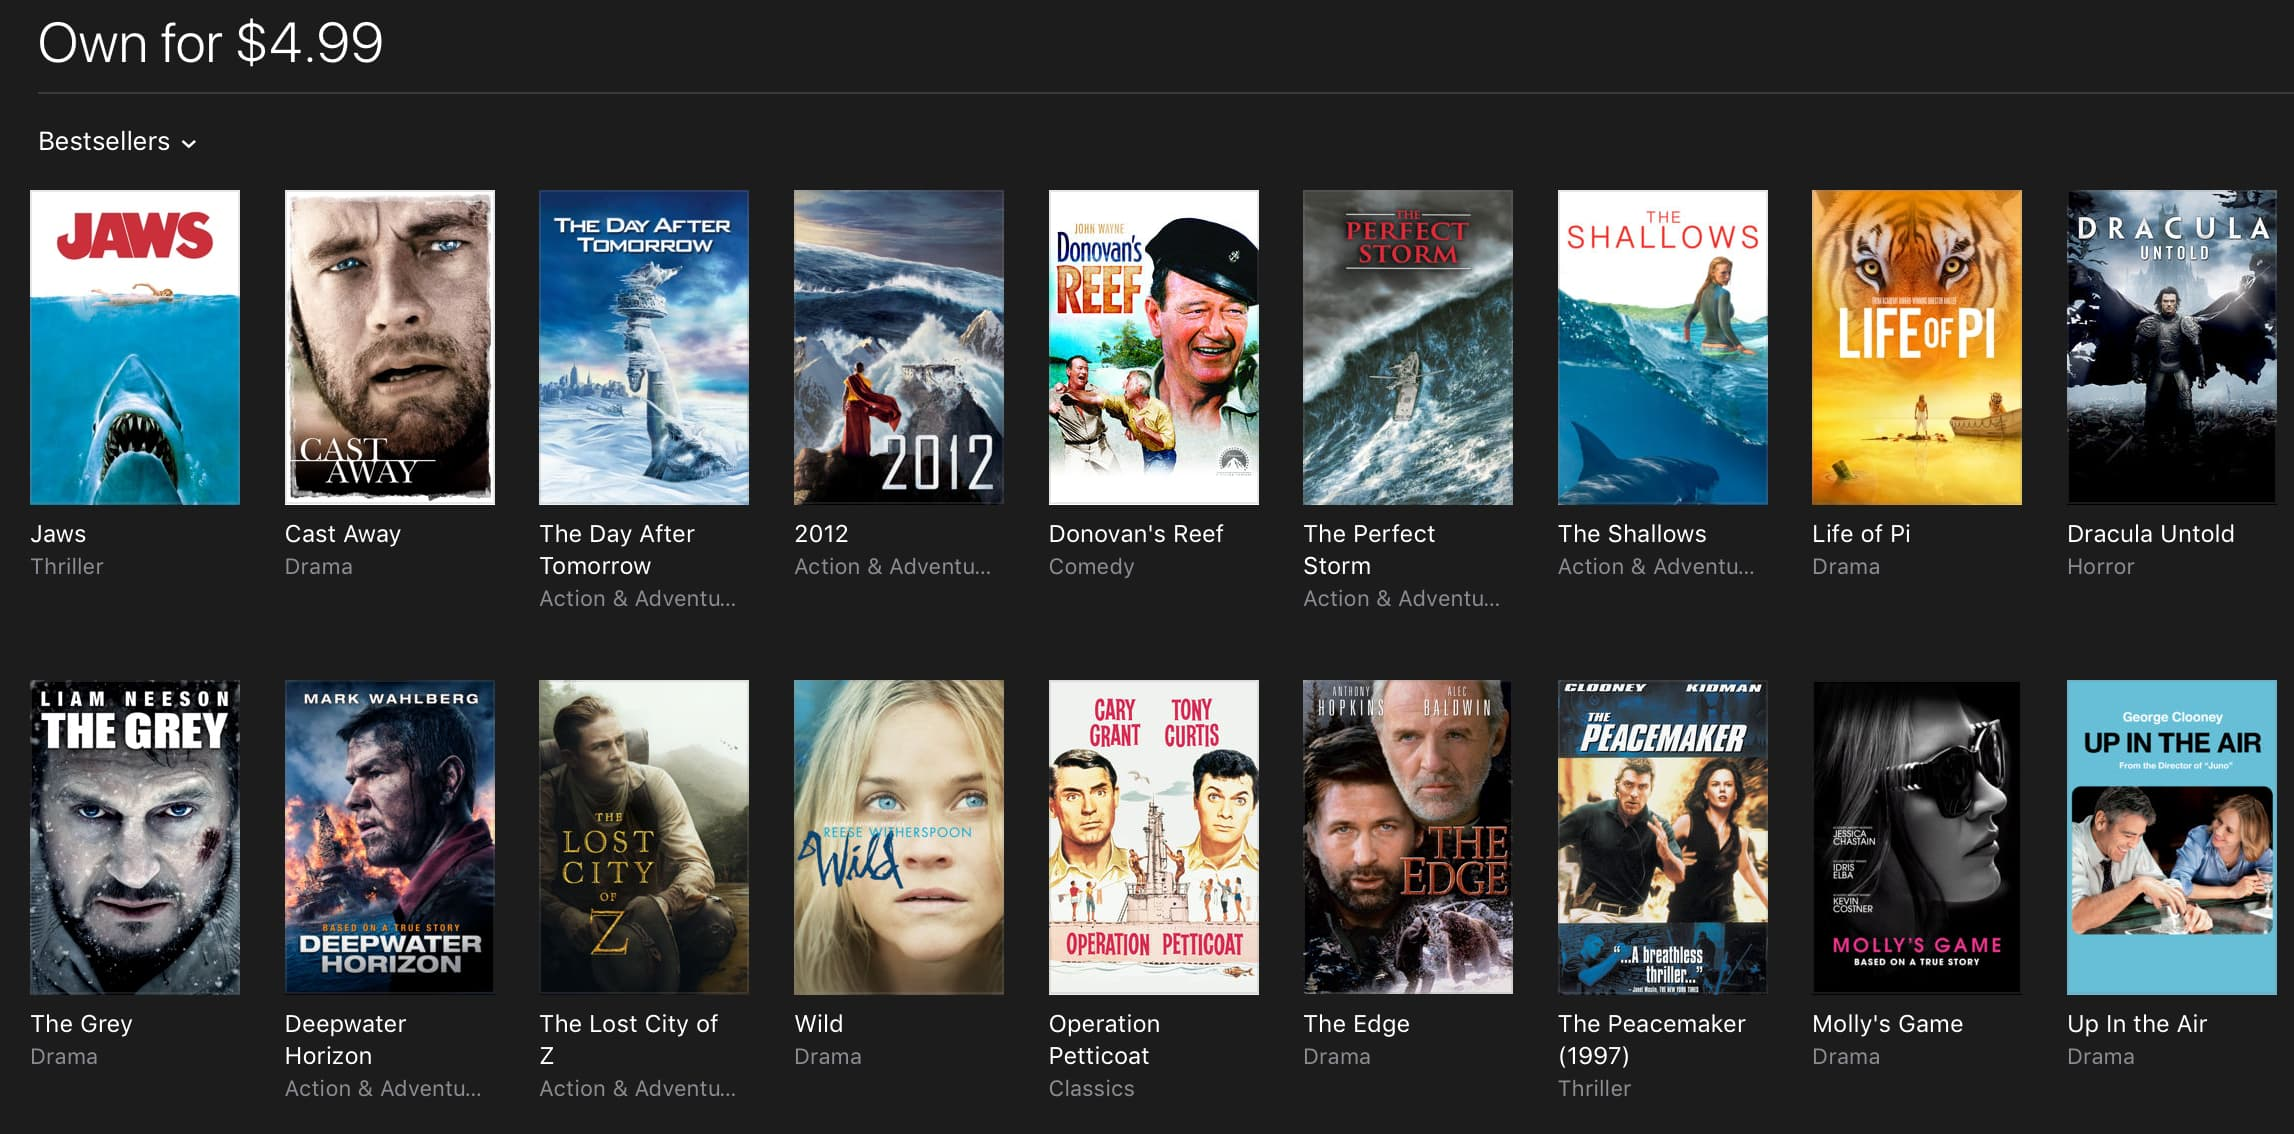 iTunes movie deals: Deepwater Horizon $5, Interstellar and The Martian $10, and more